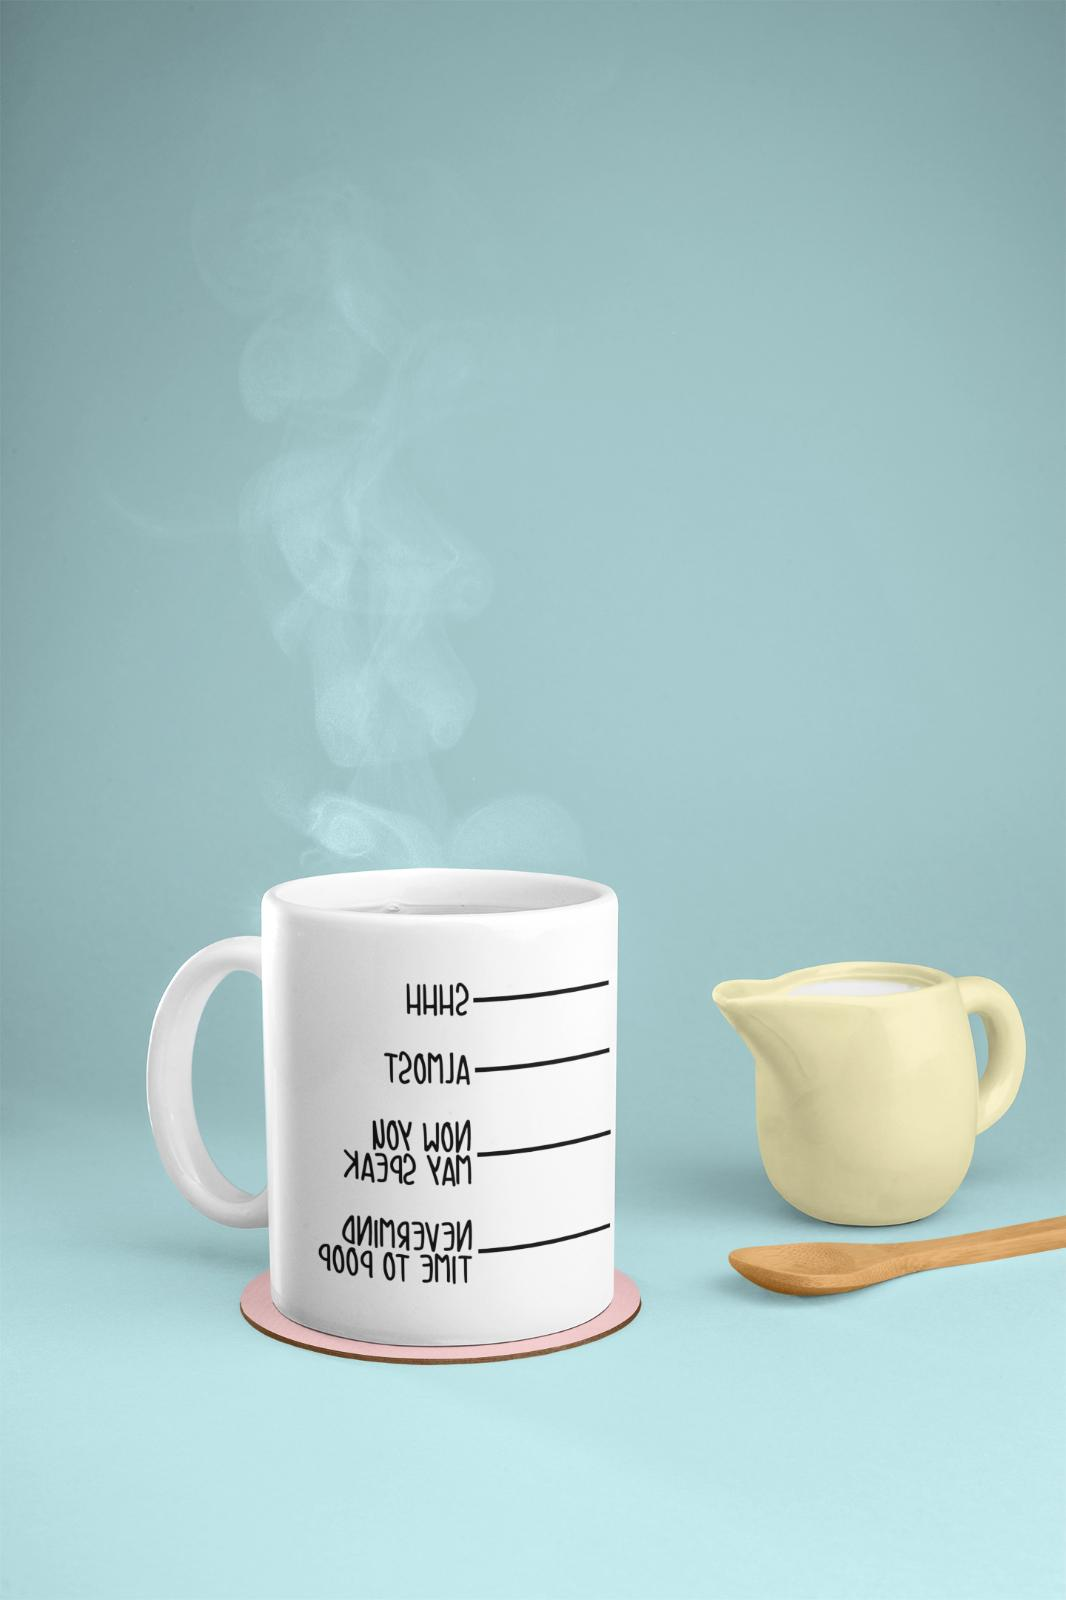 Shhh Almost Now May I Have To Poop Funny 11 Oz Coffee Mug